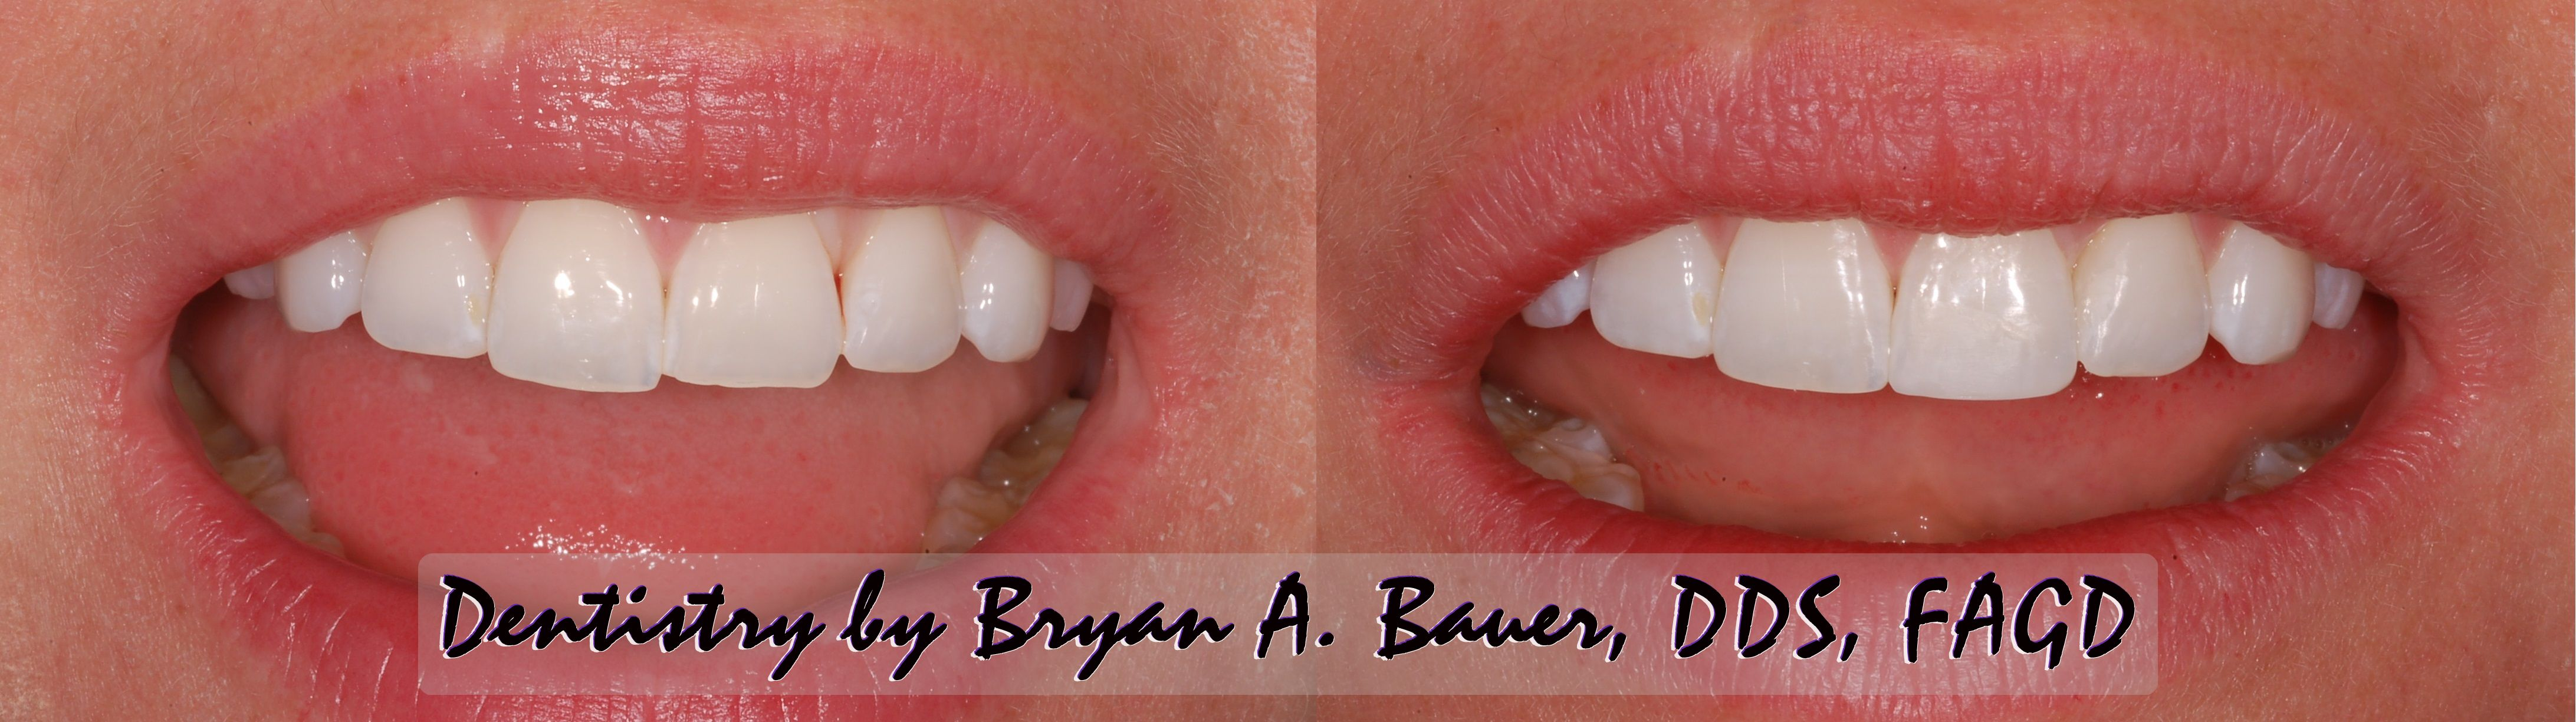 Chipped front tooth filling - Easy Solution! - Bauer Smiles